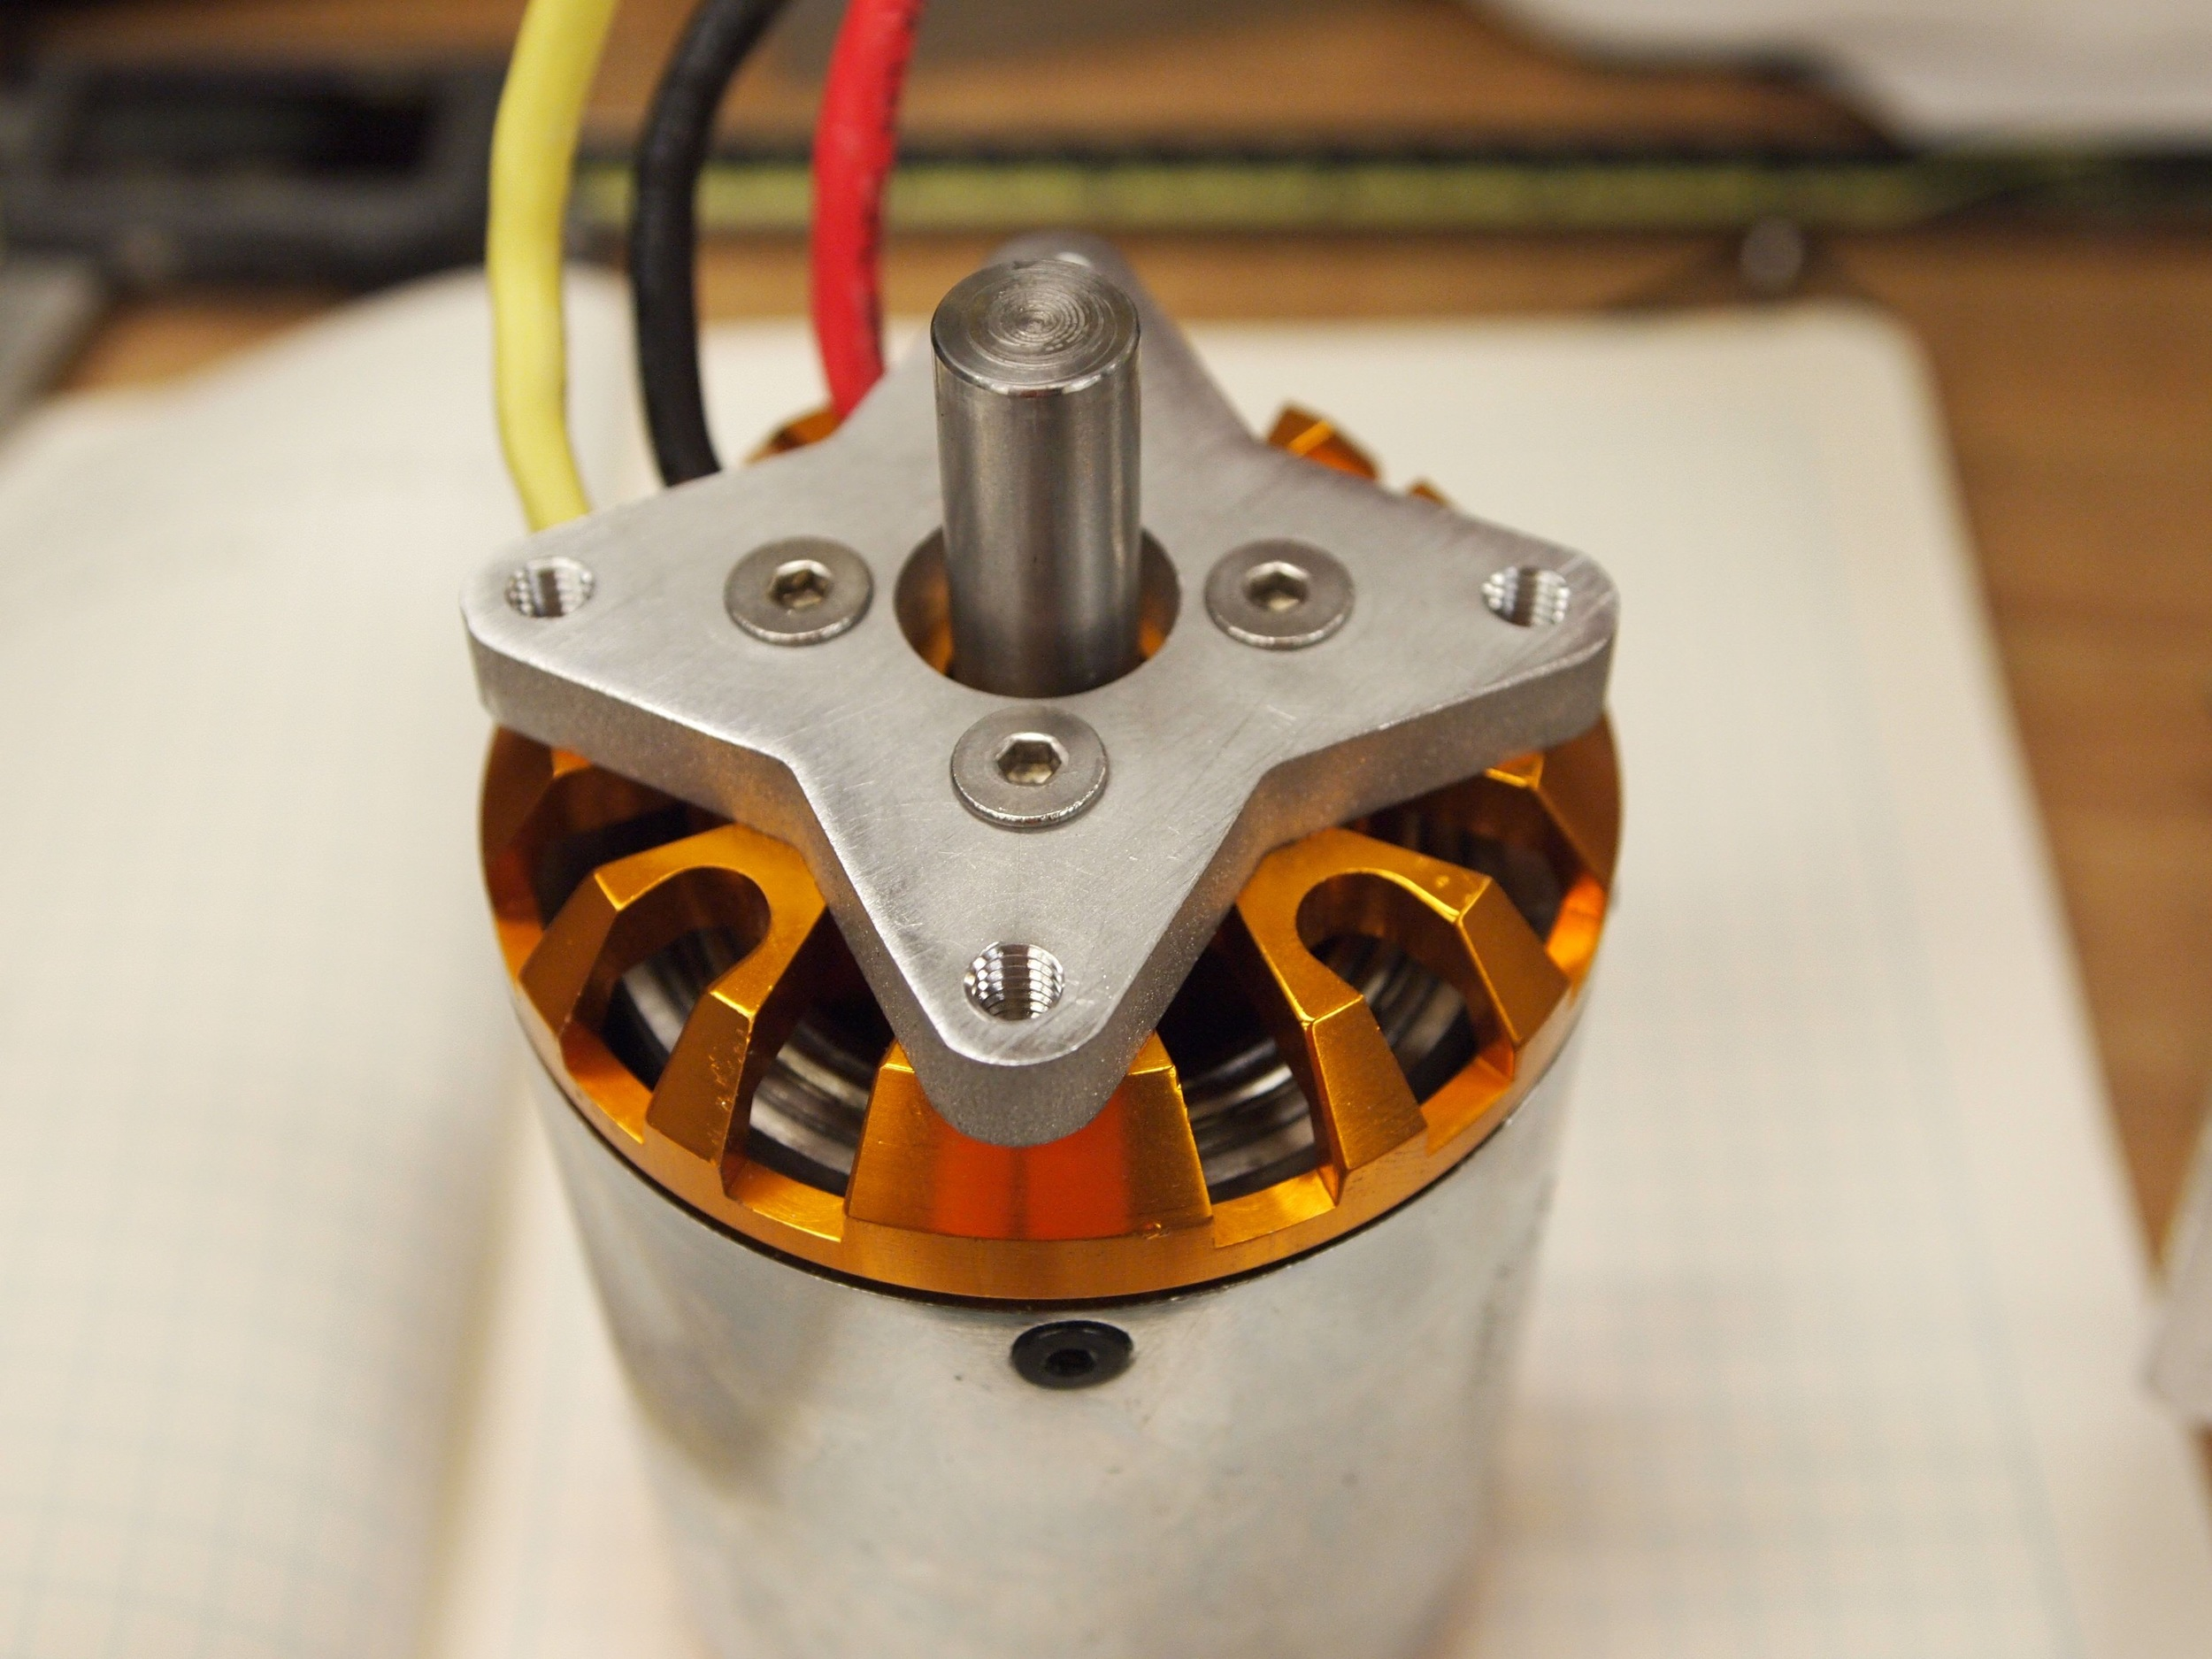 The motor mount attached to the motor. This is a large brushless motor which would typically be used to drive a propeller.